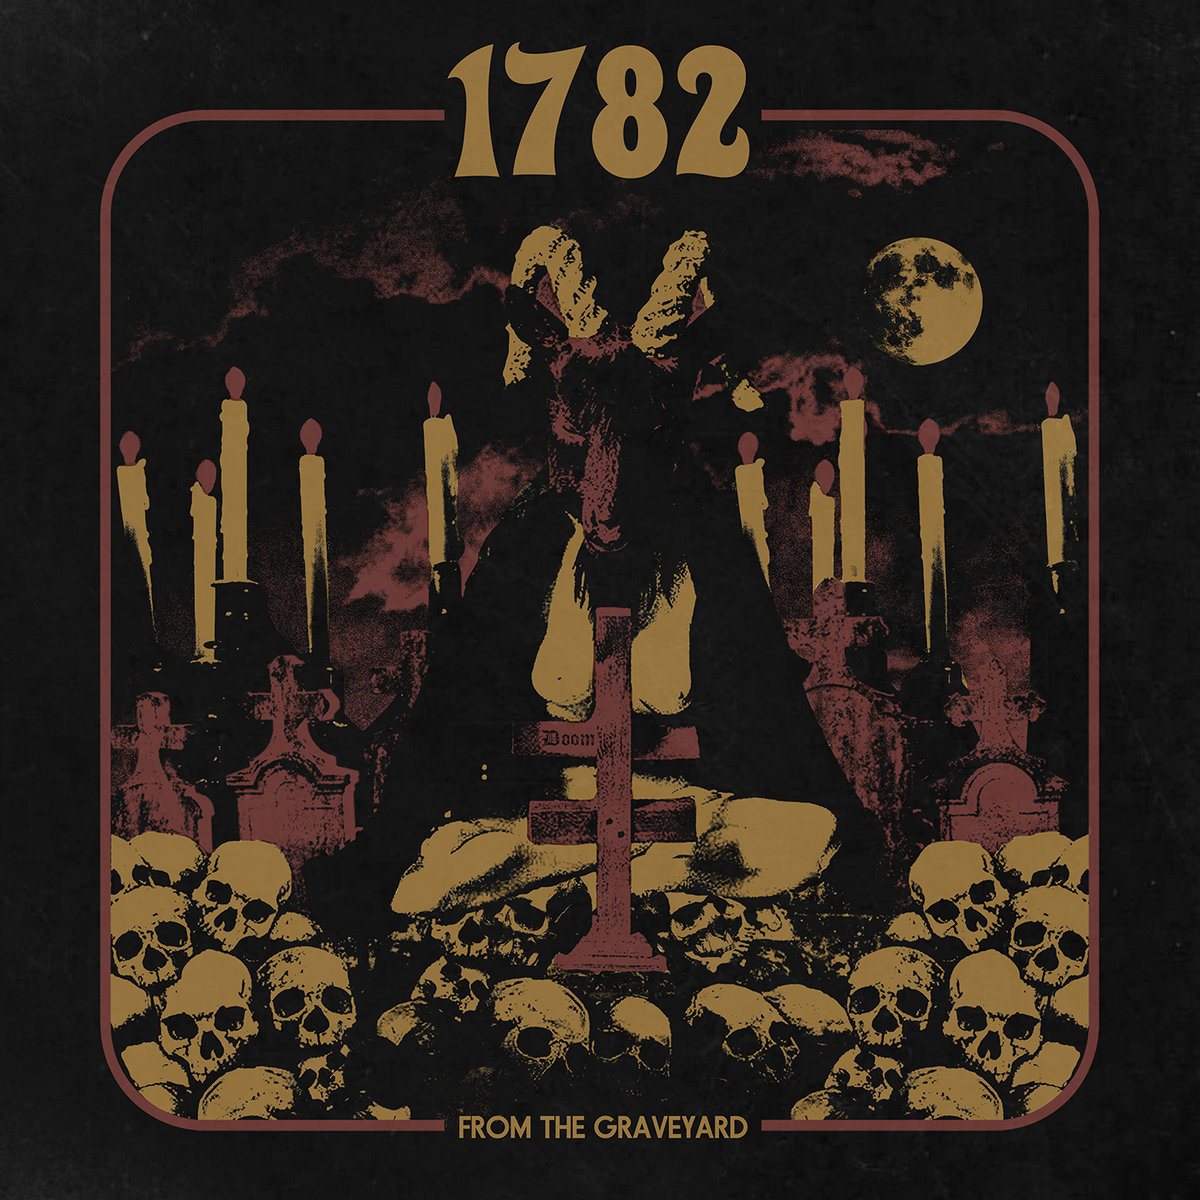 1782 - From the Graveyard - Electric Valley Records - recensione - Marco Cherchi - 2021 - Sa Scena - 28 aprile 2021